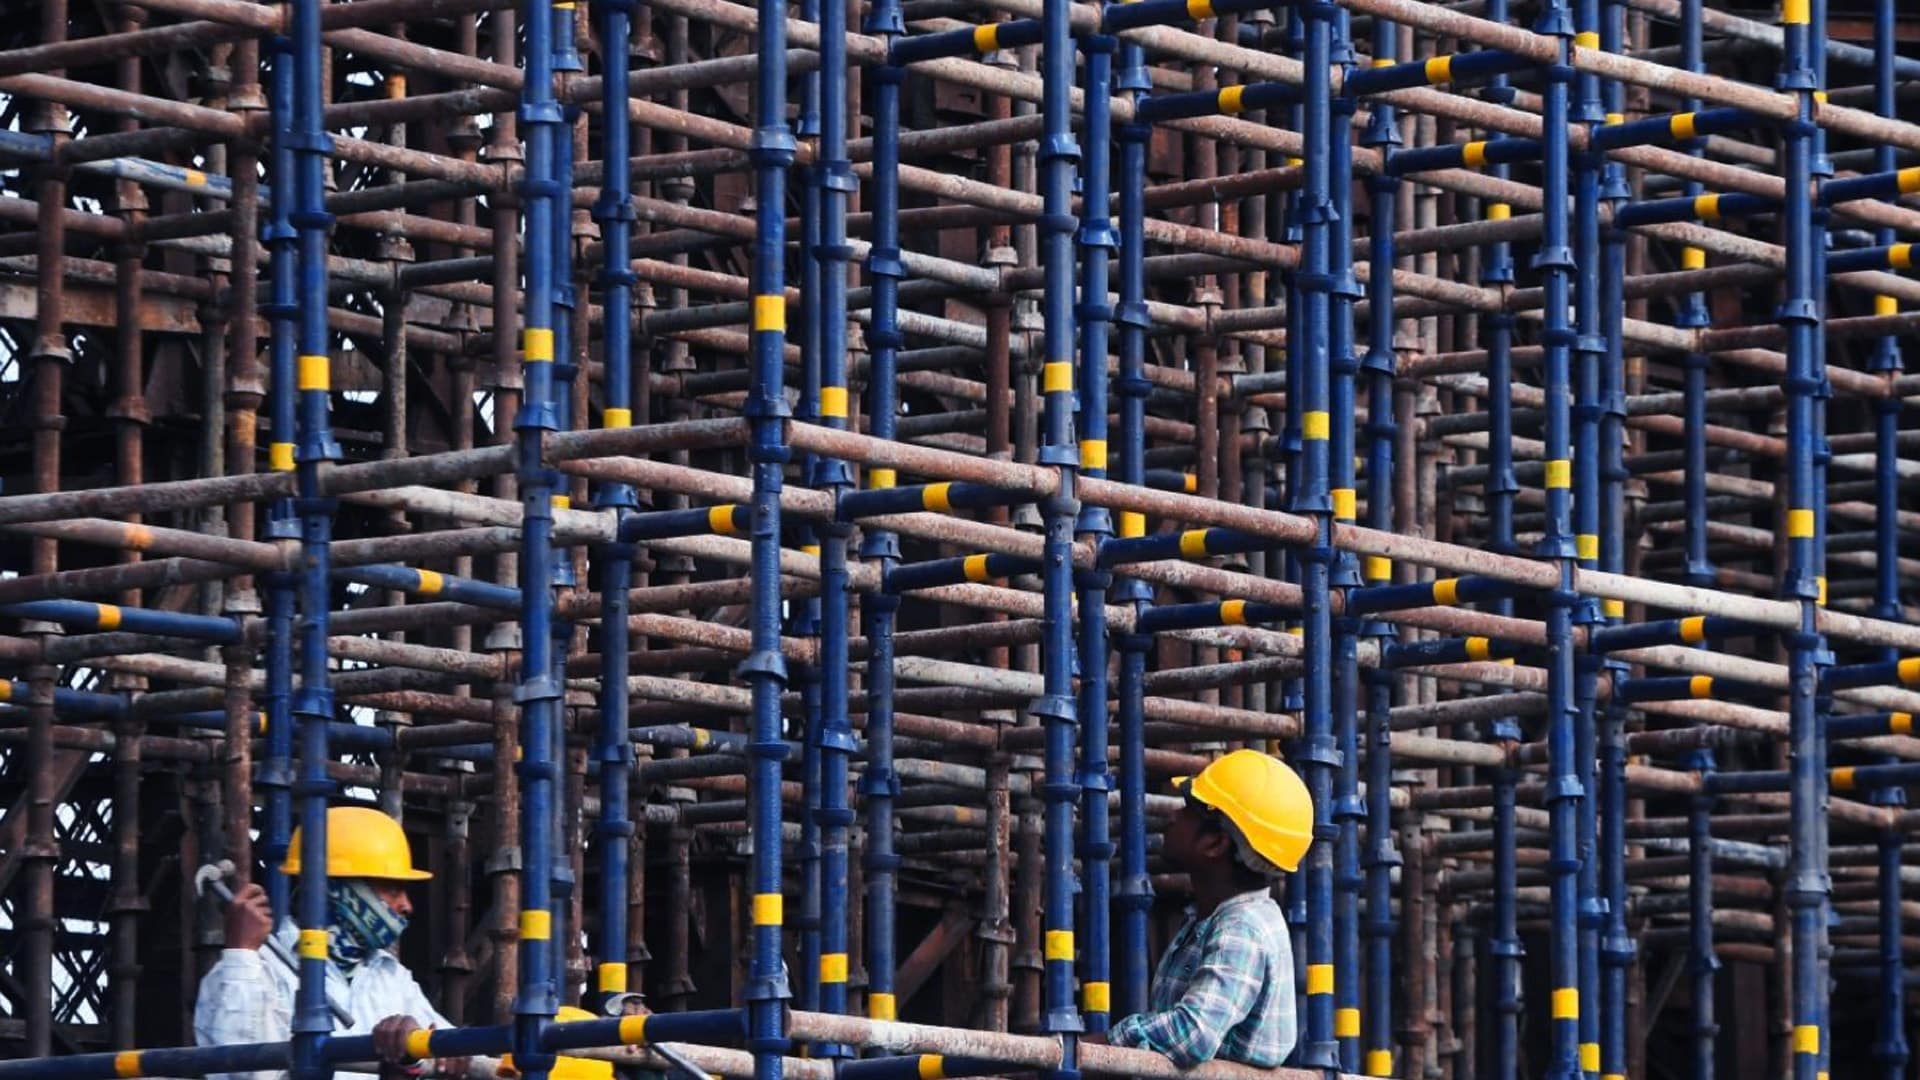 Infra.market joins unicorn club with $100 mn funding from Tiger Global, others